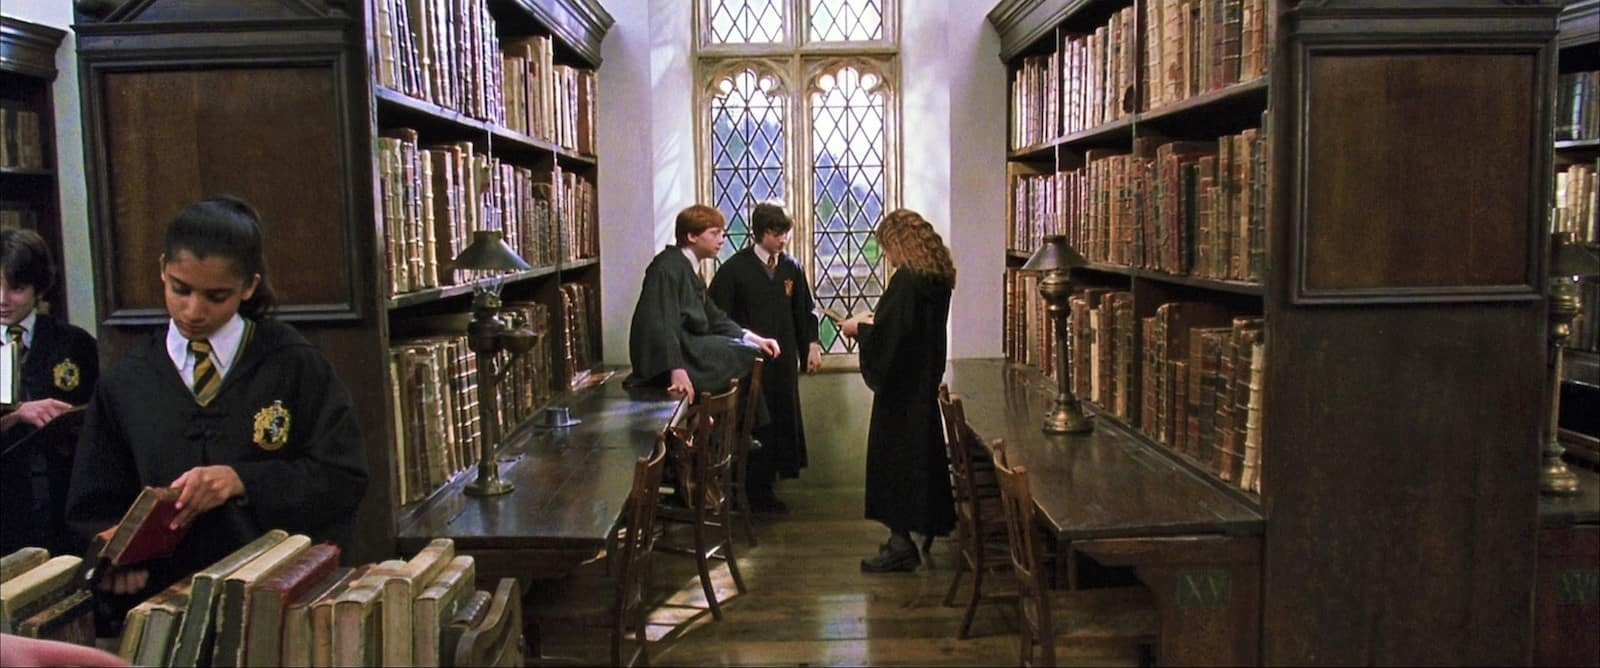 Public Domain Public Domain Books Ideas for Screenplay Harry Potter